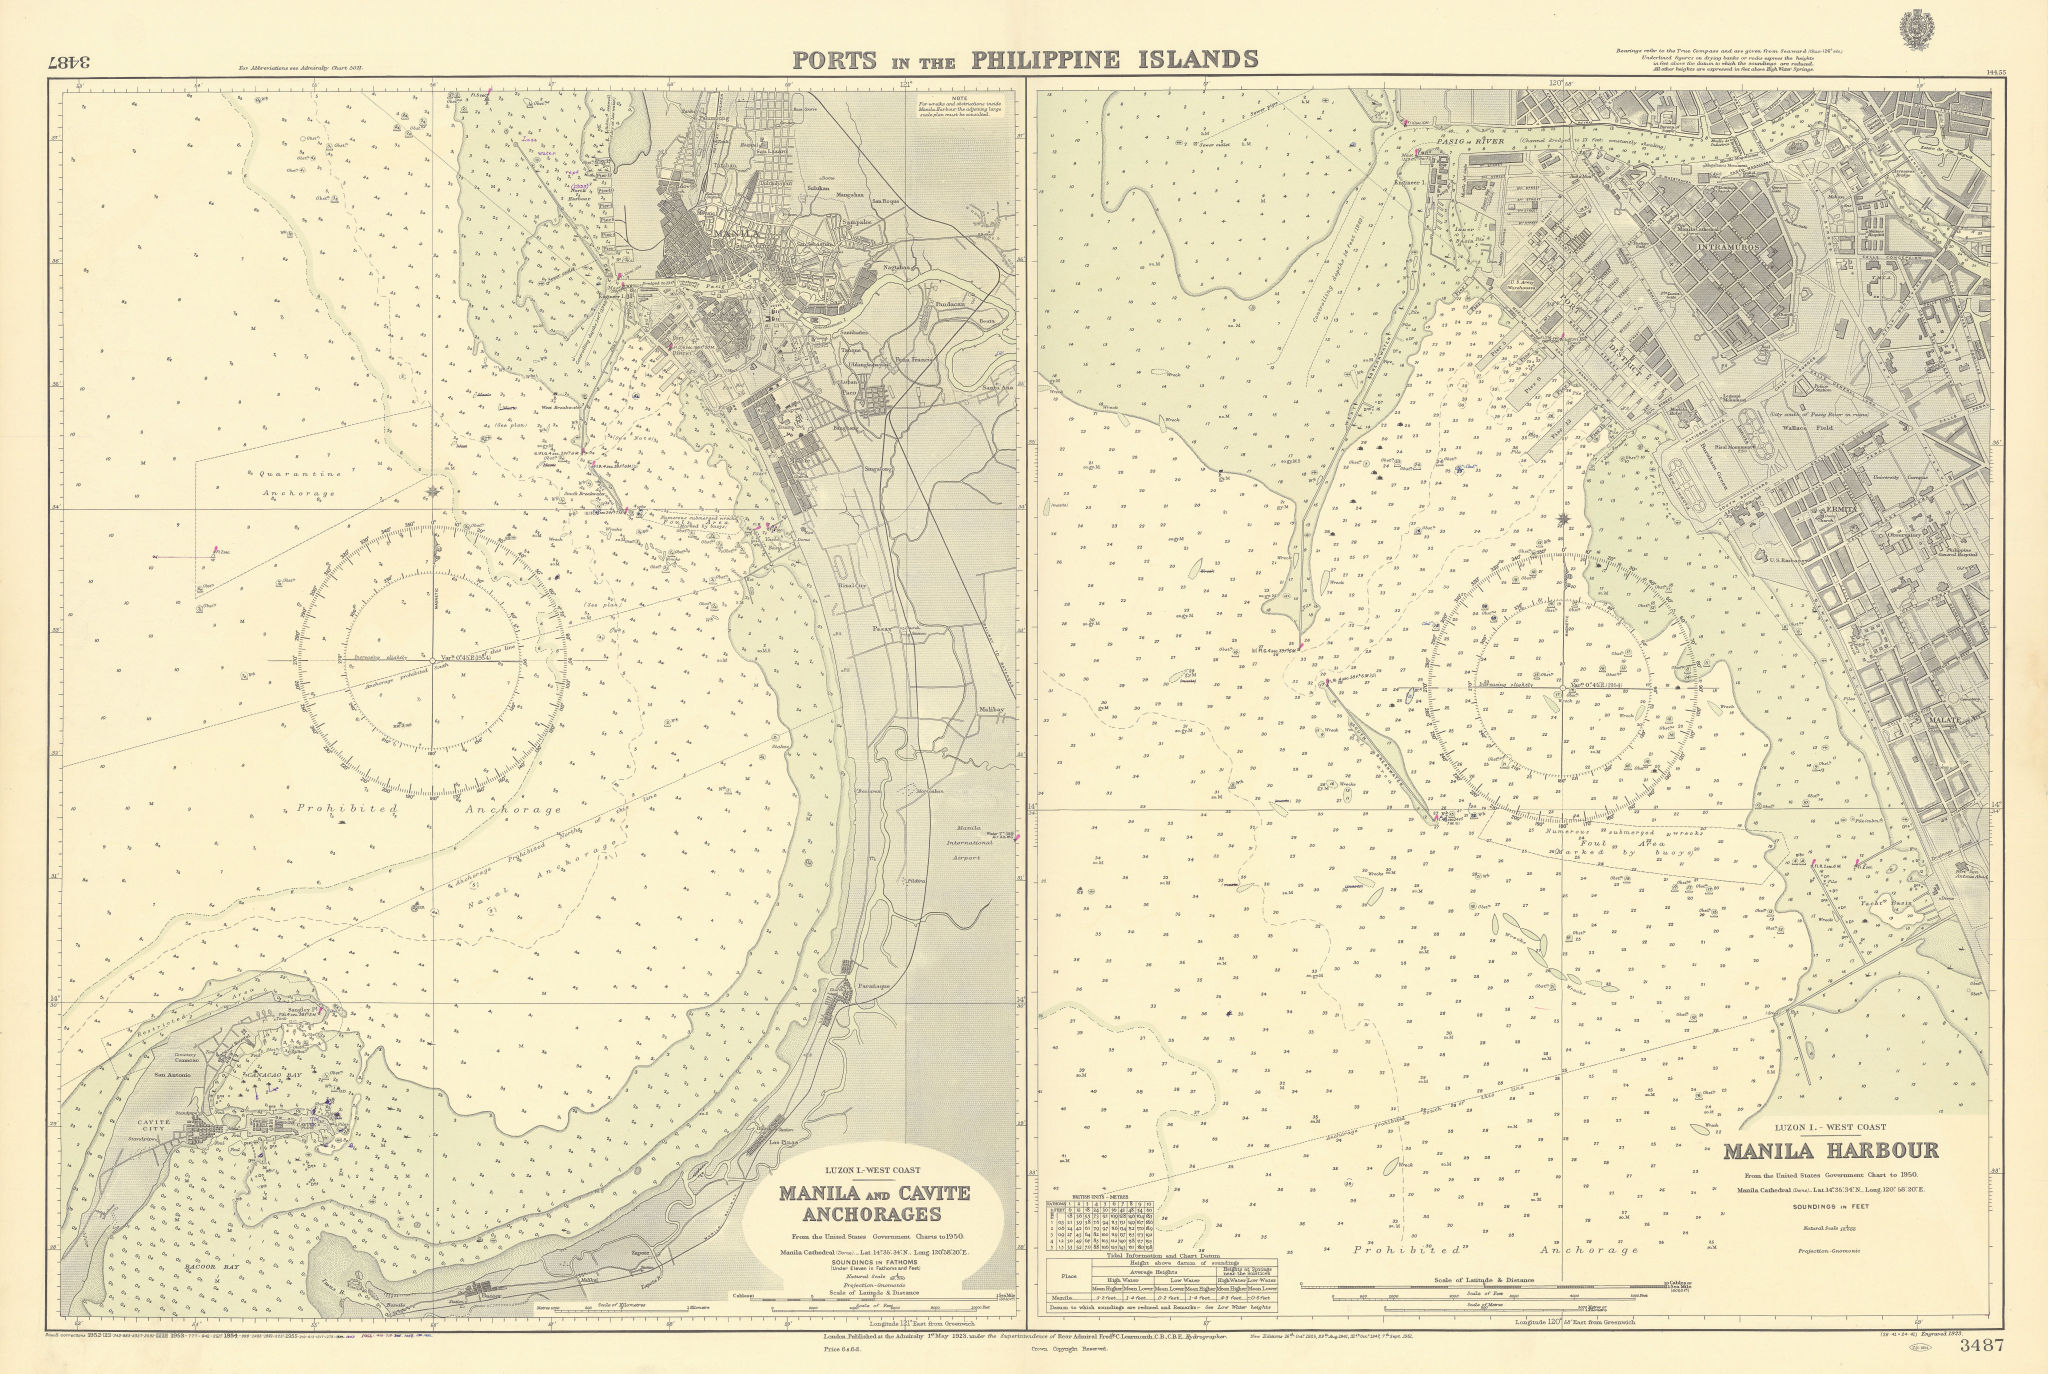 Philippines Ports. Manila Cavite Anchorages. ADMIRALTY sea chart 1923 (1956) map